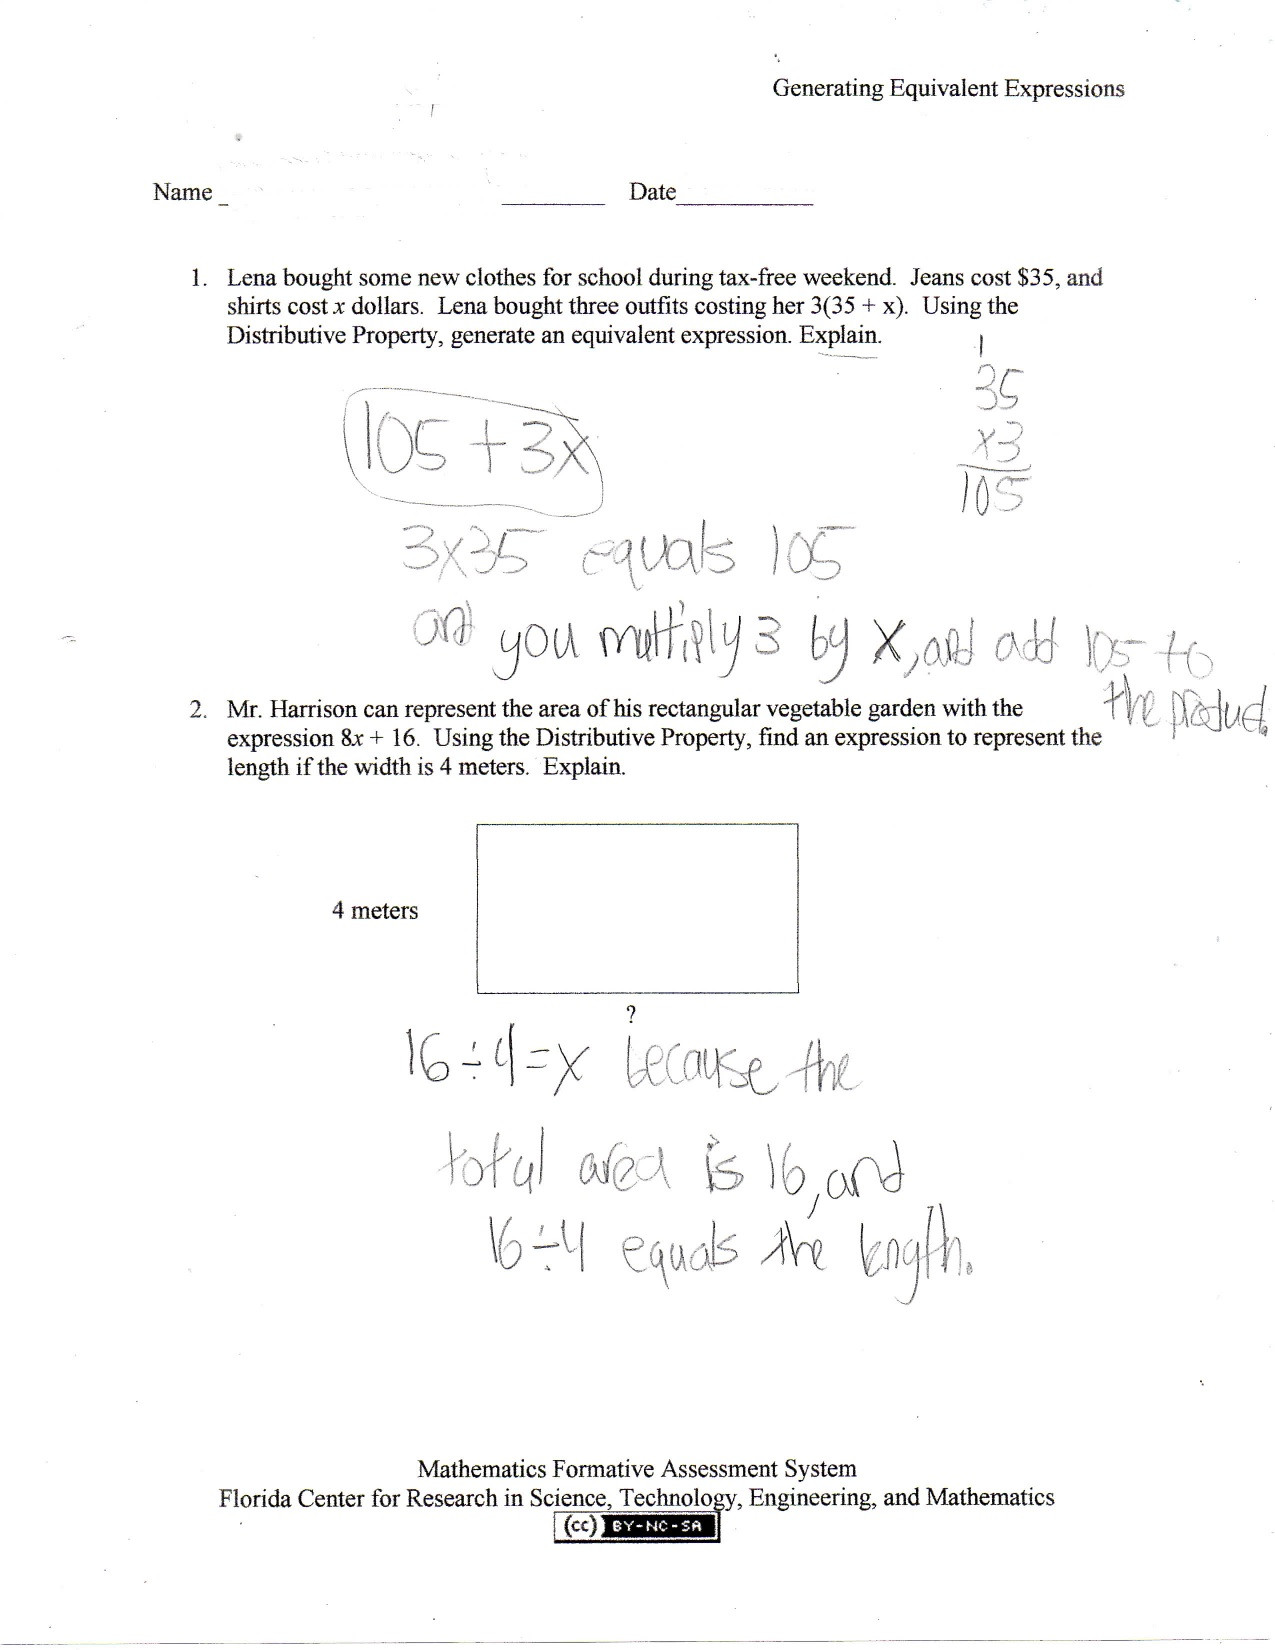 Equivalent Expressions Worksheet 7th Grade Generating Equivalent Expressions Students are asked to